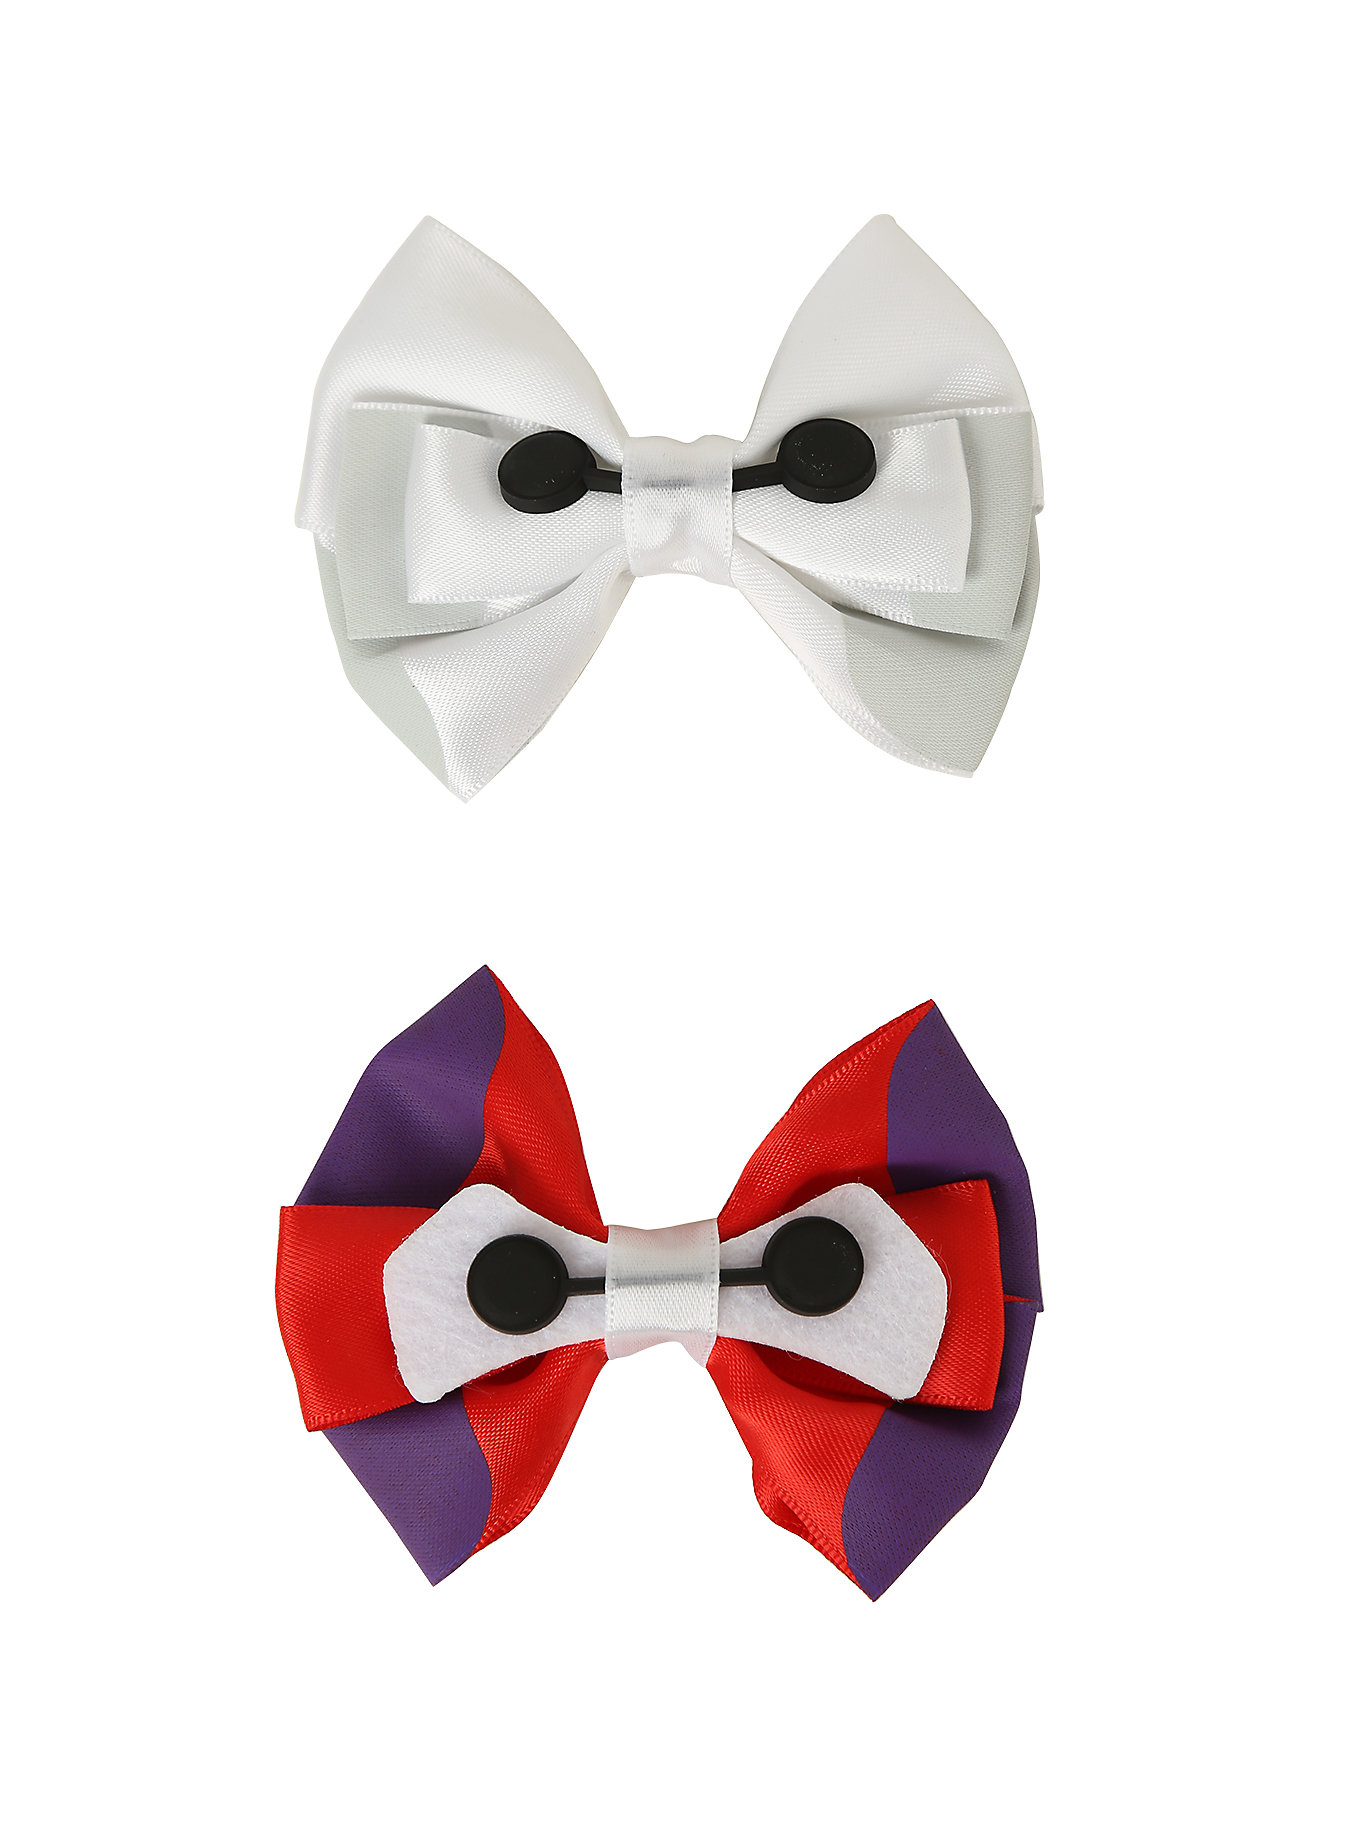 New Hair Bows For Women Online At Hot Topic Diskingdom Disney Marvel Star Wars Merchandise News